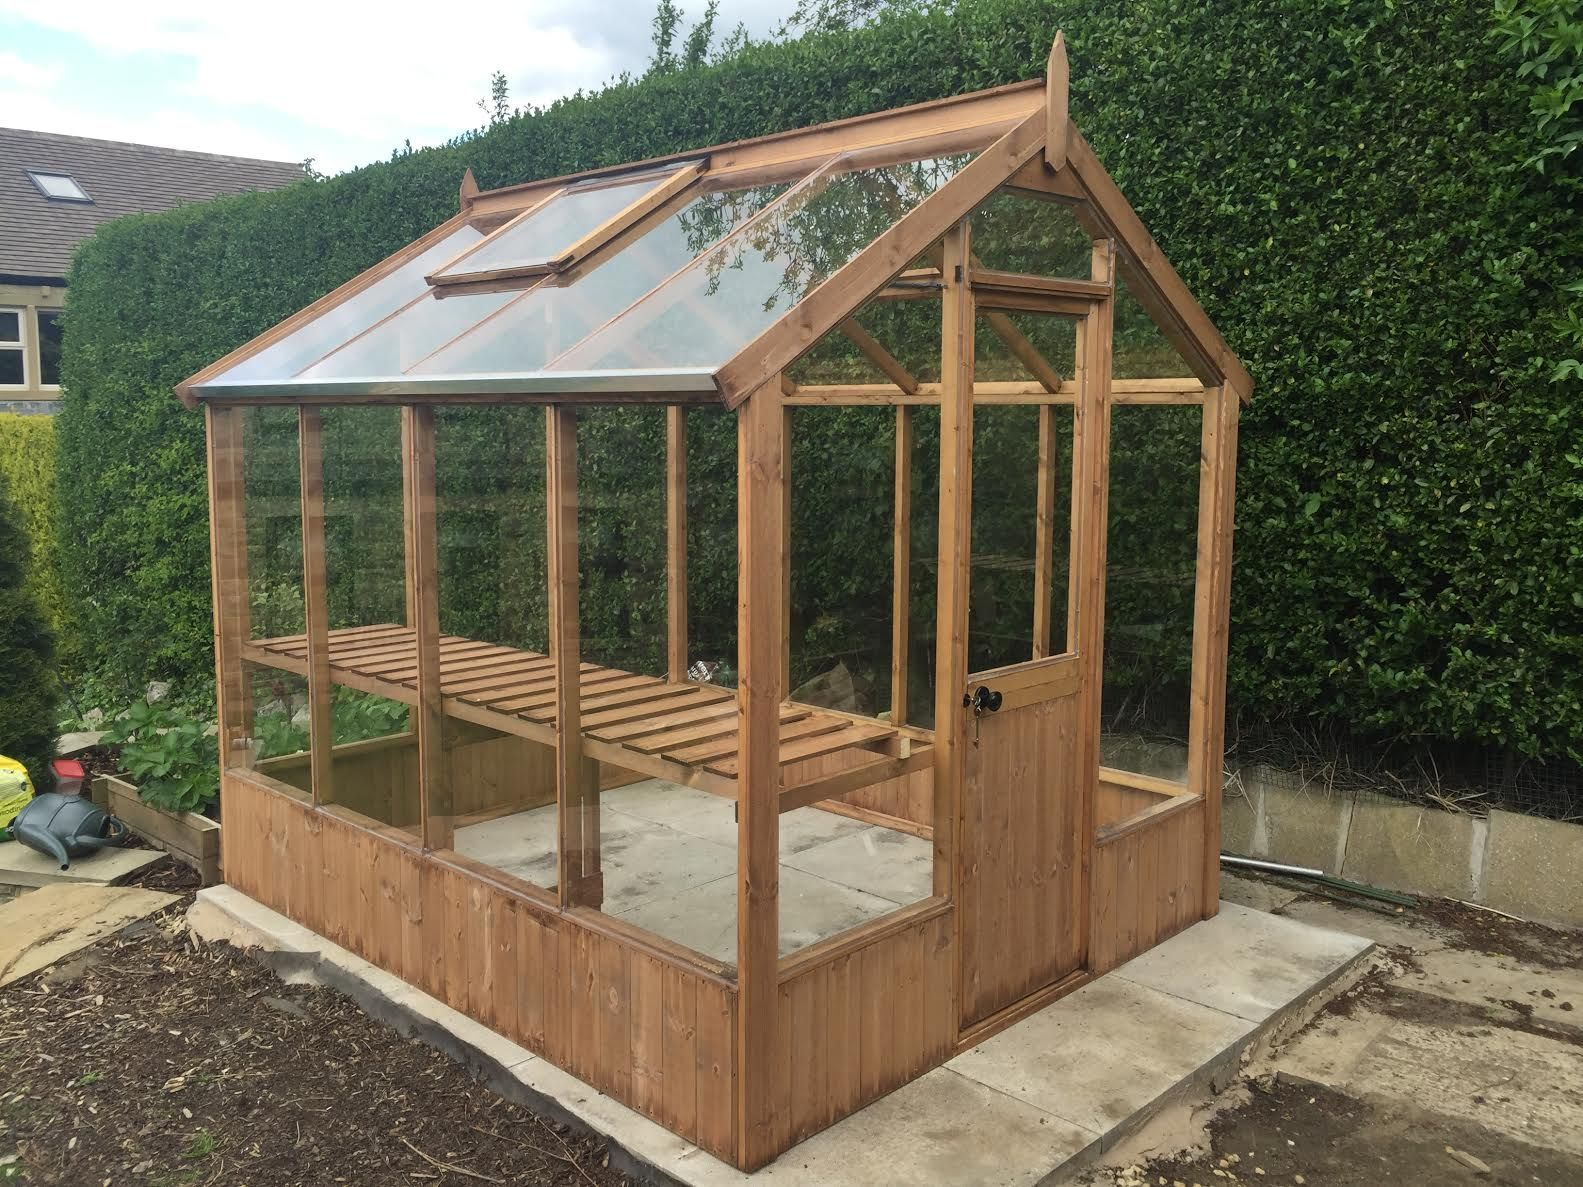 Wooden Victorian Lean To Greenhouse Kits Modern House